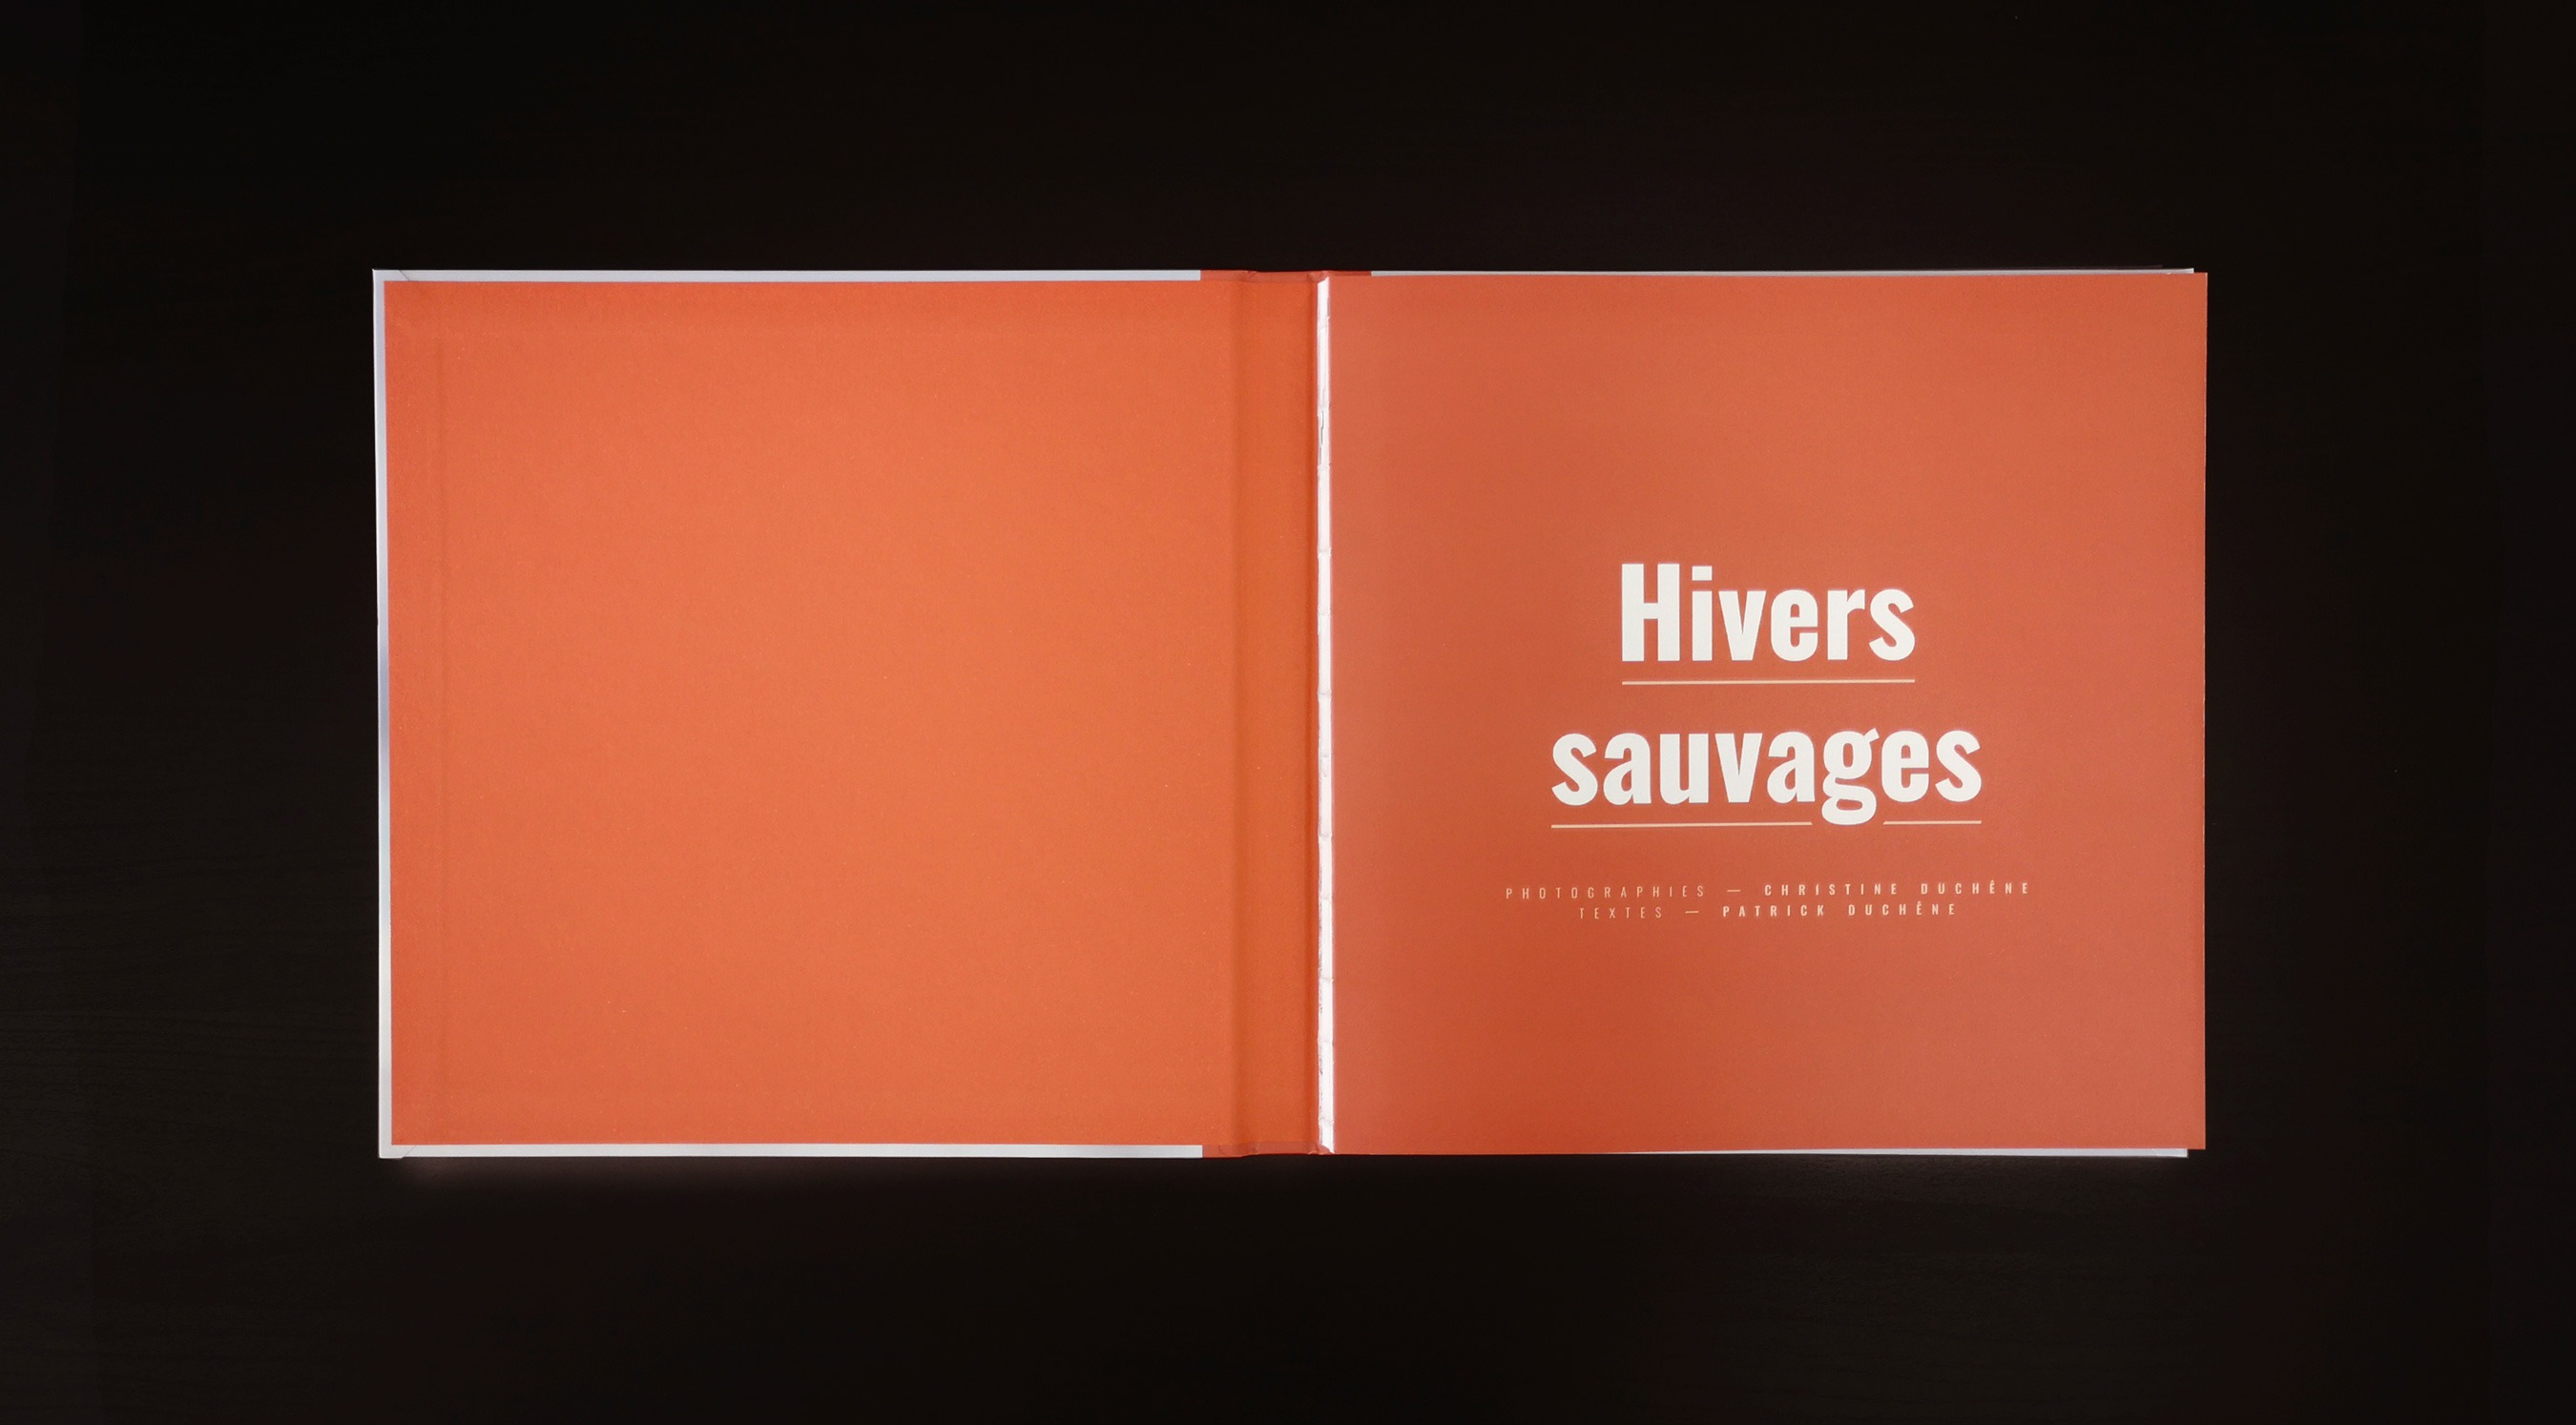 Hivers sauvages 4